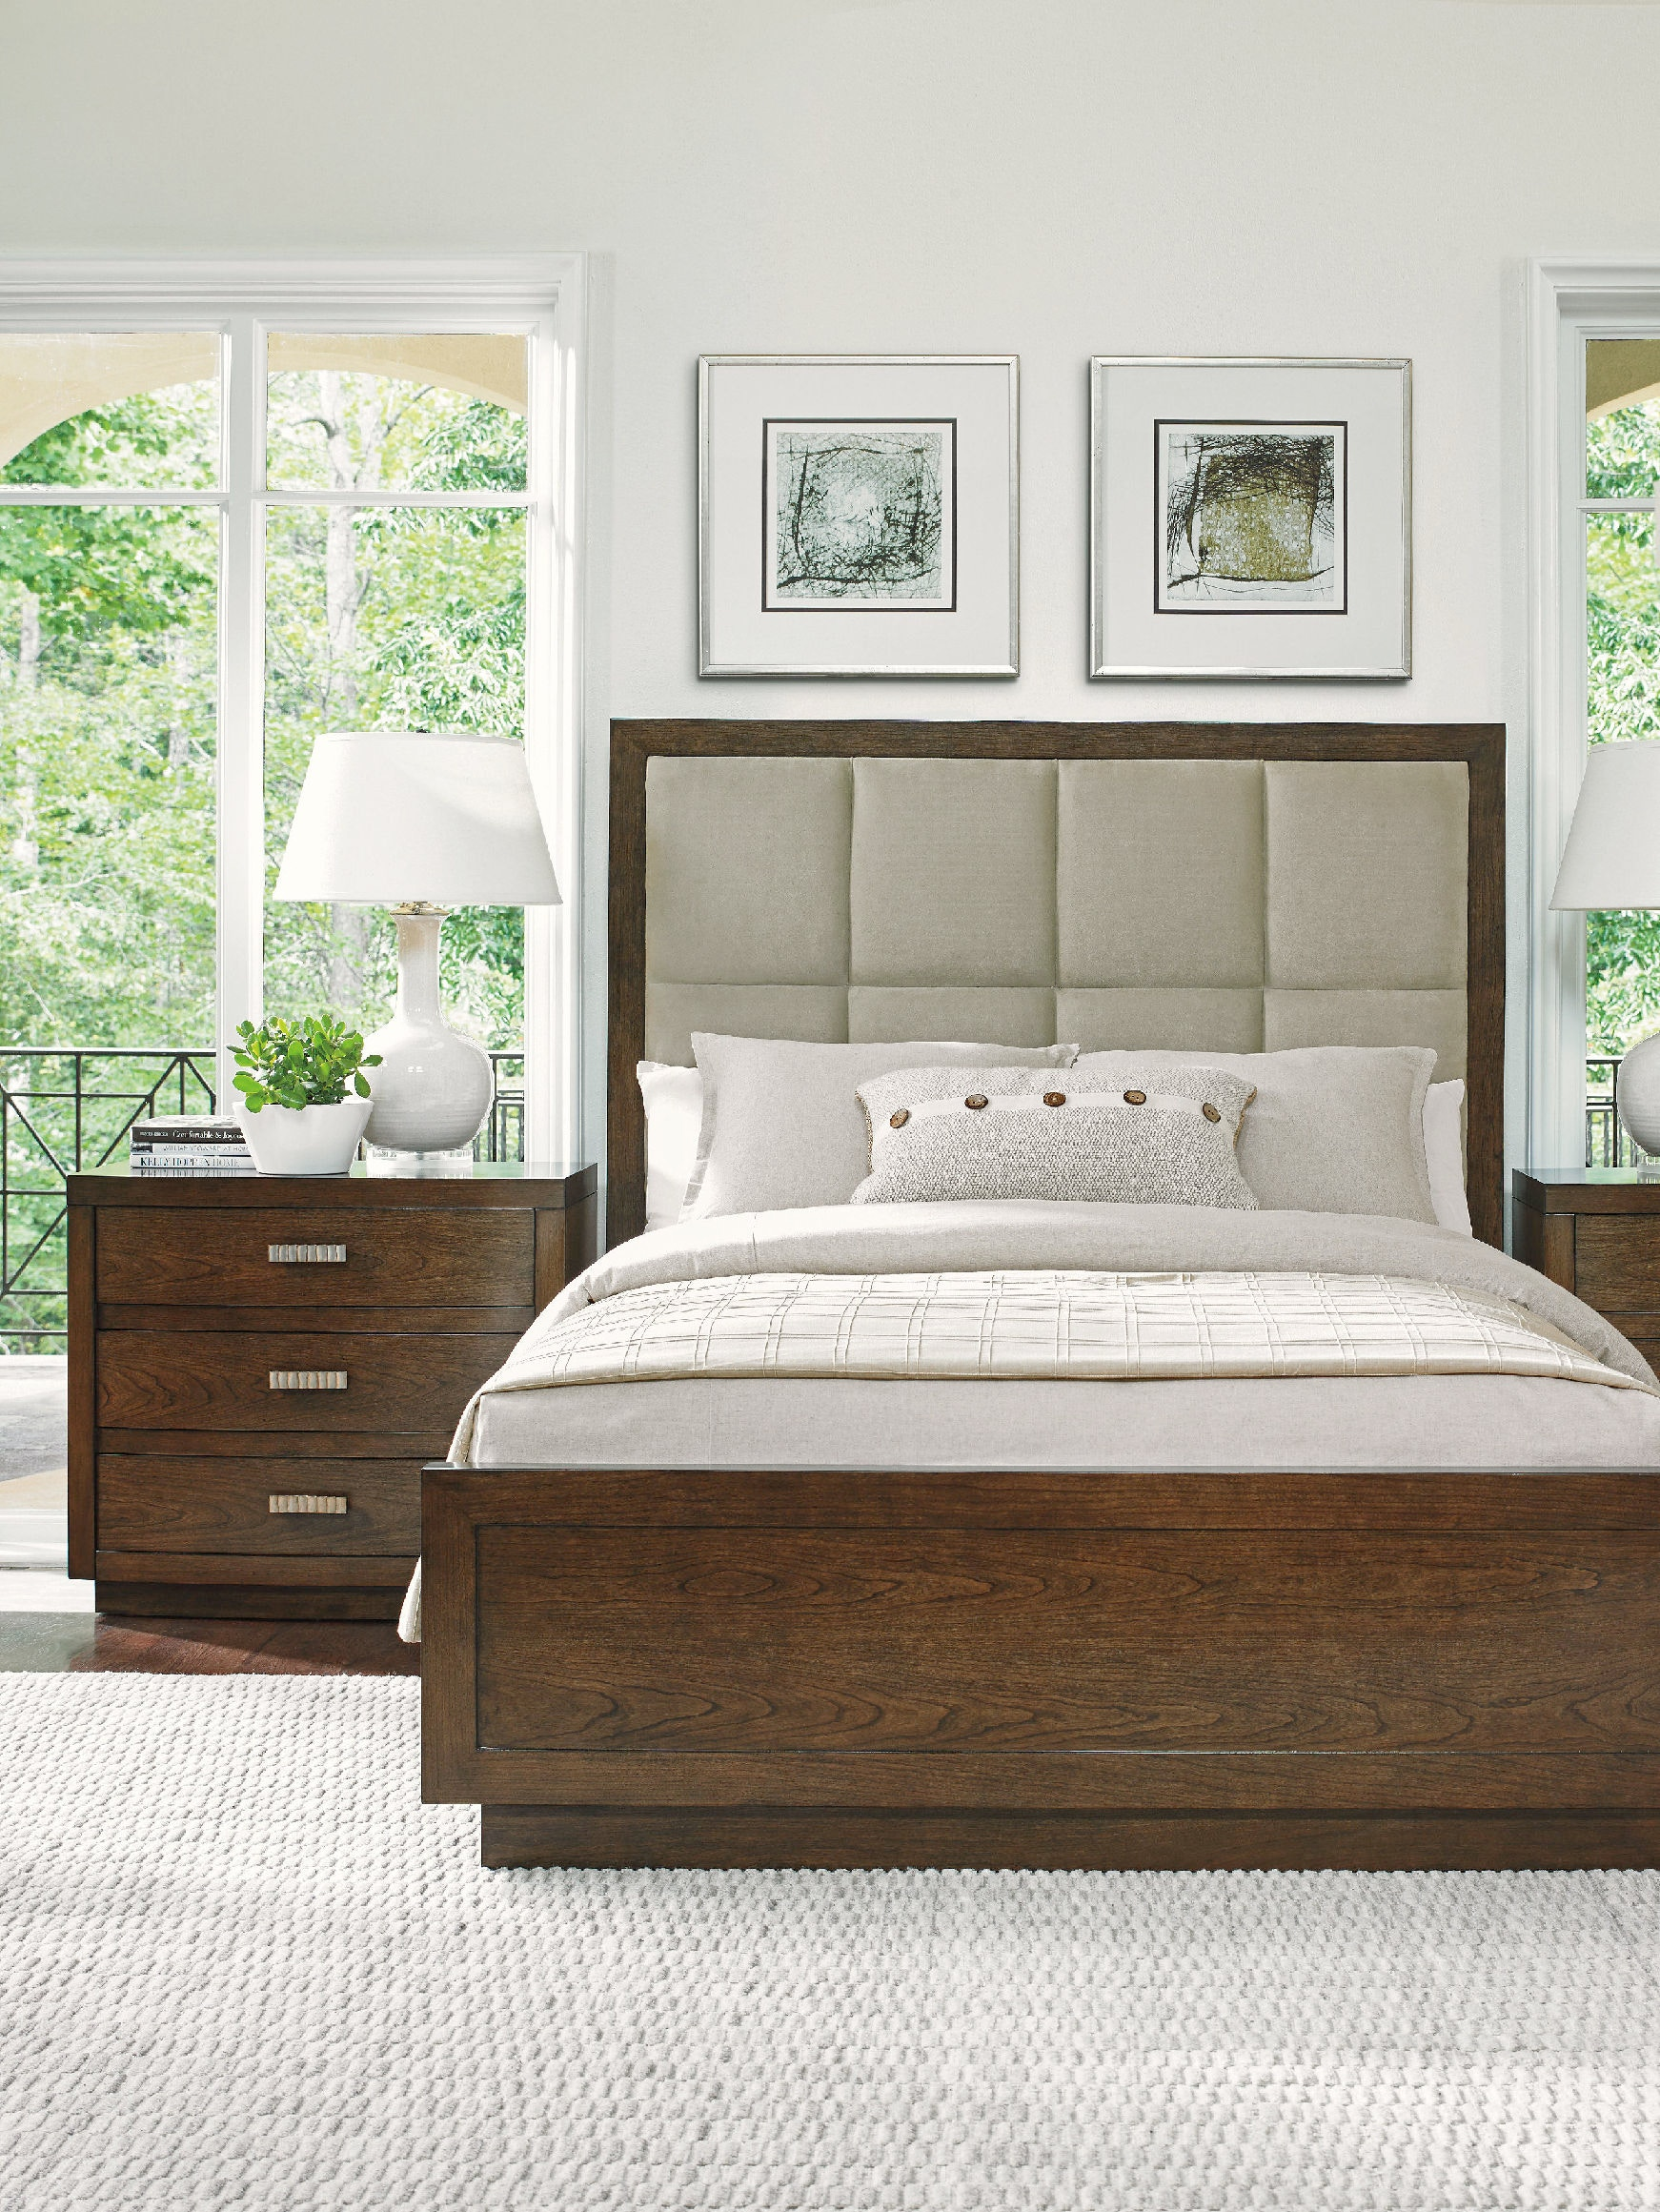 Lexington Bedroom Casa Del Mar Upholstered Bed 5/0 Queen 721-133C - Ennis Fine Furniture - Boise ...